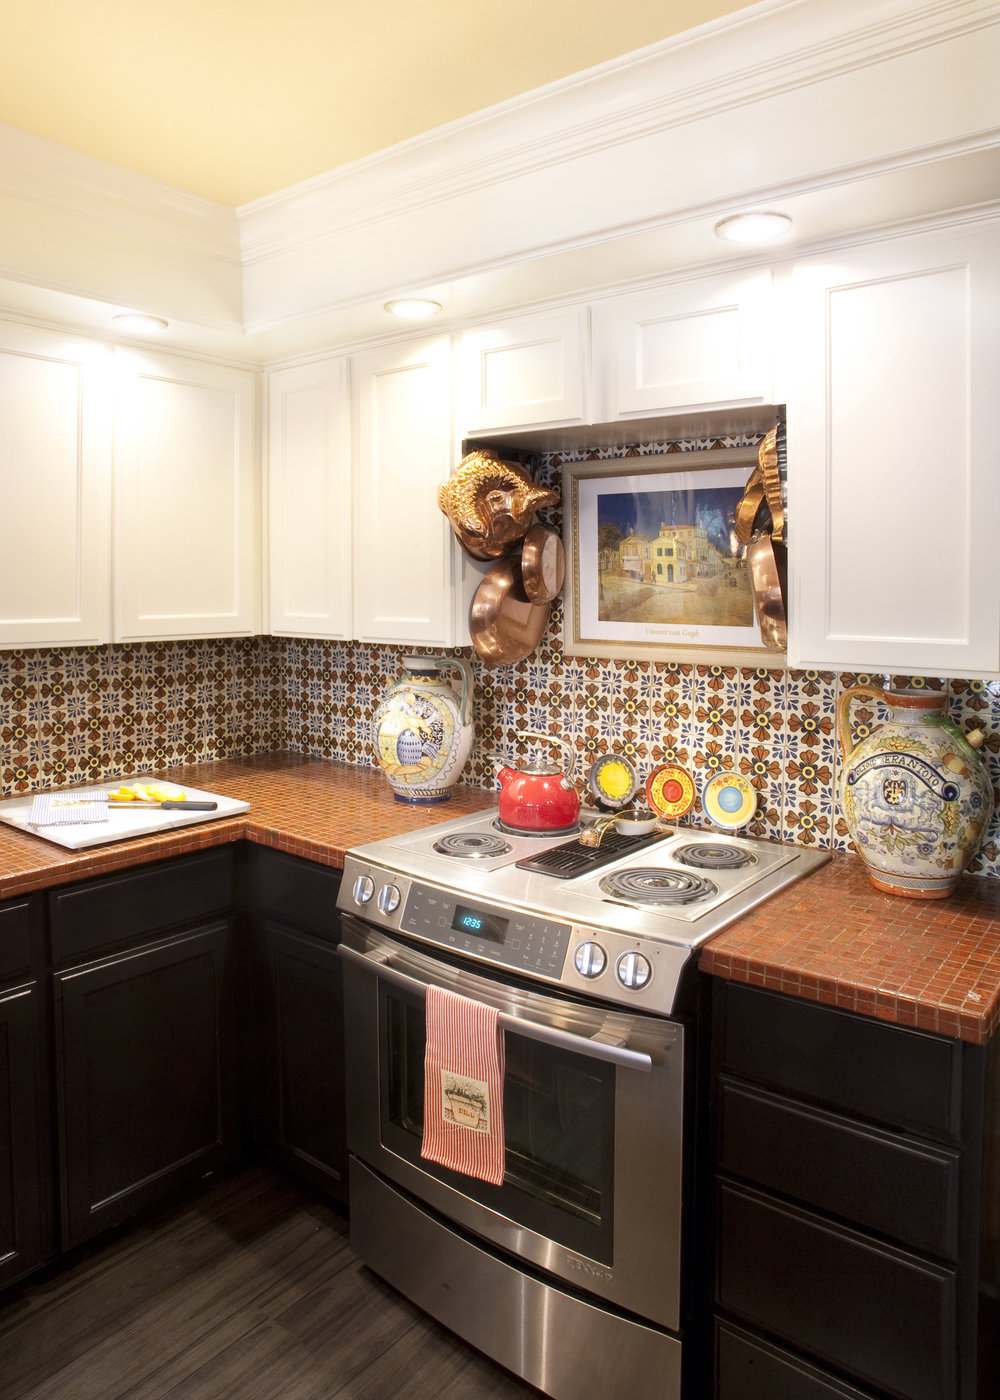 kitchen2_crop.jpg